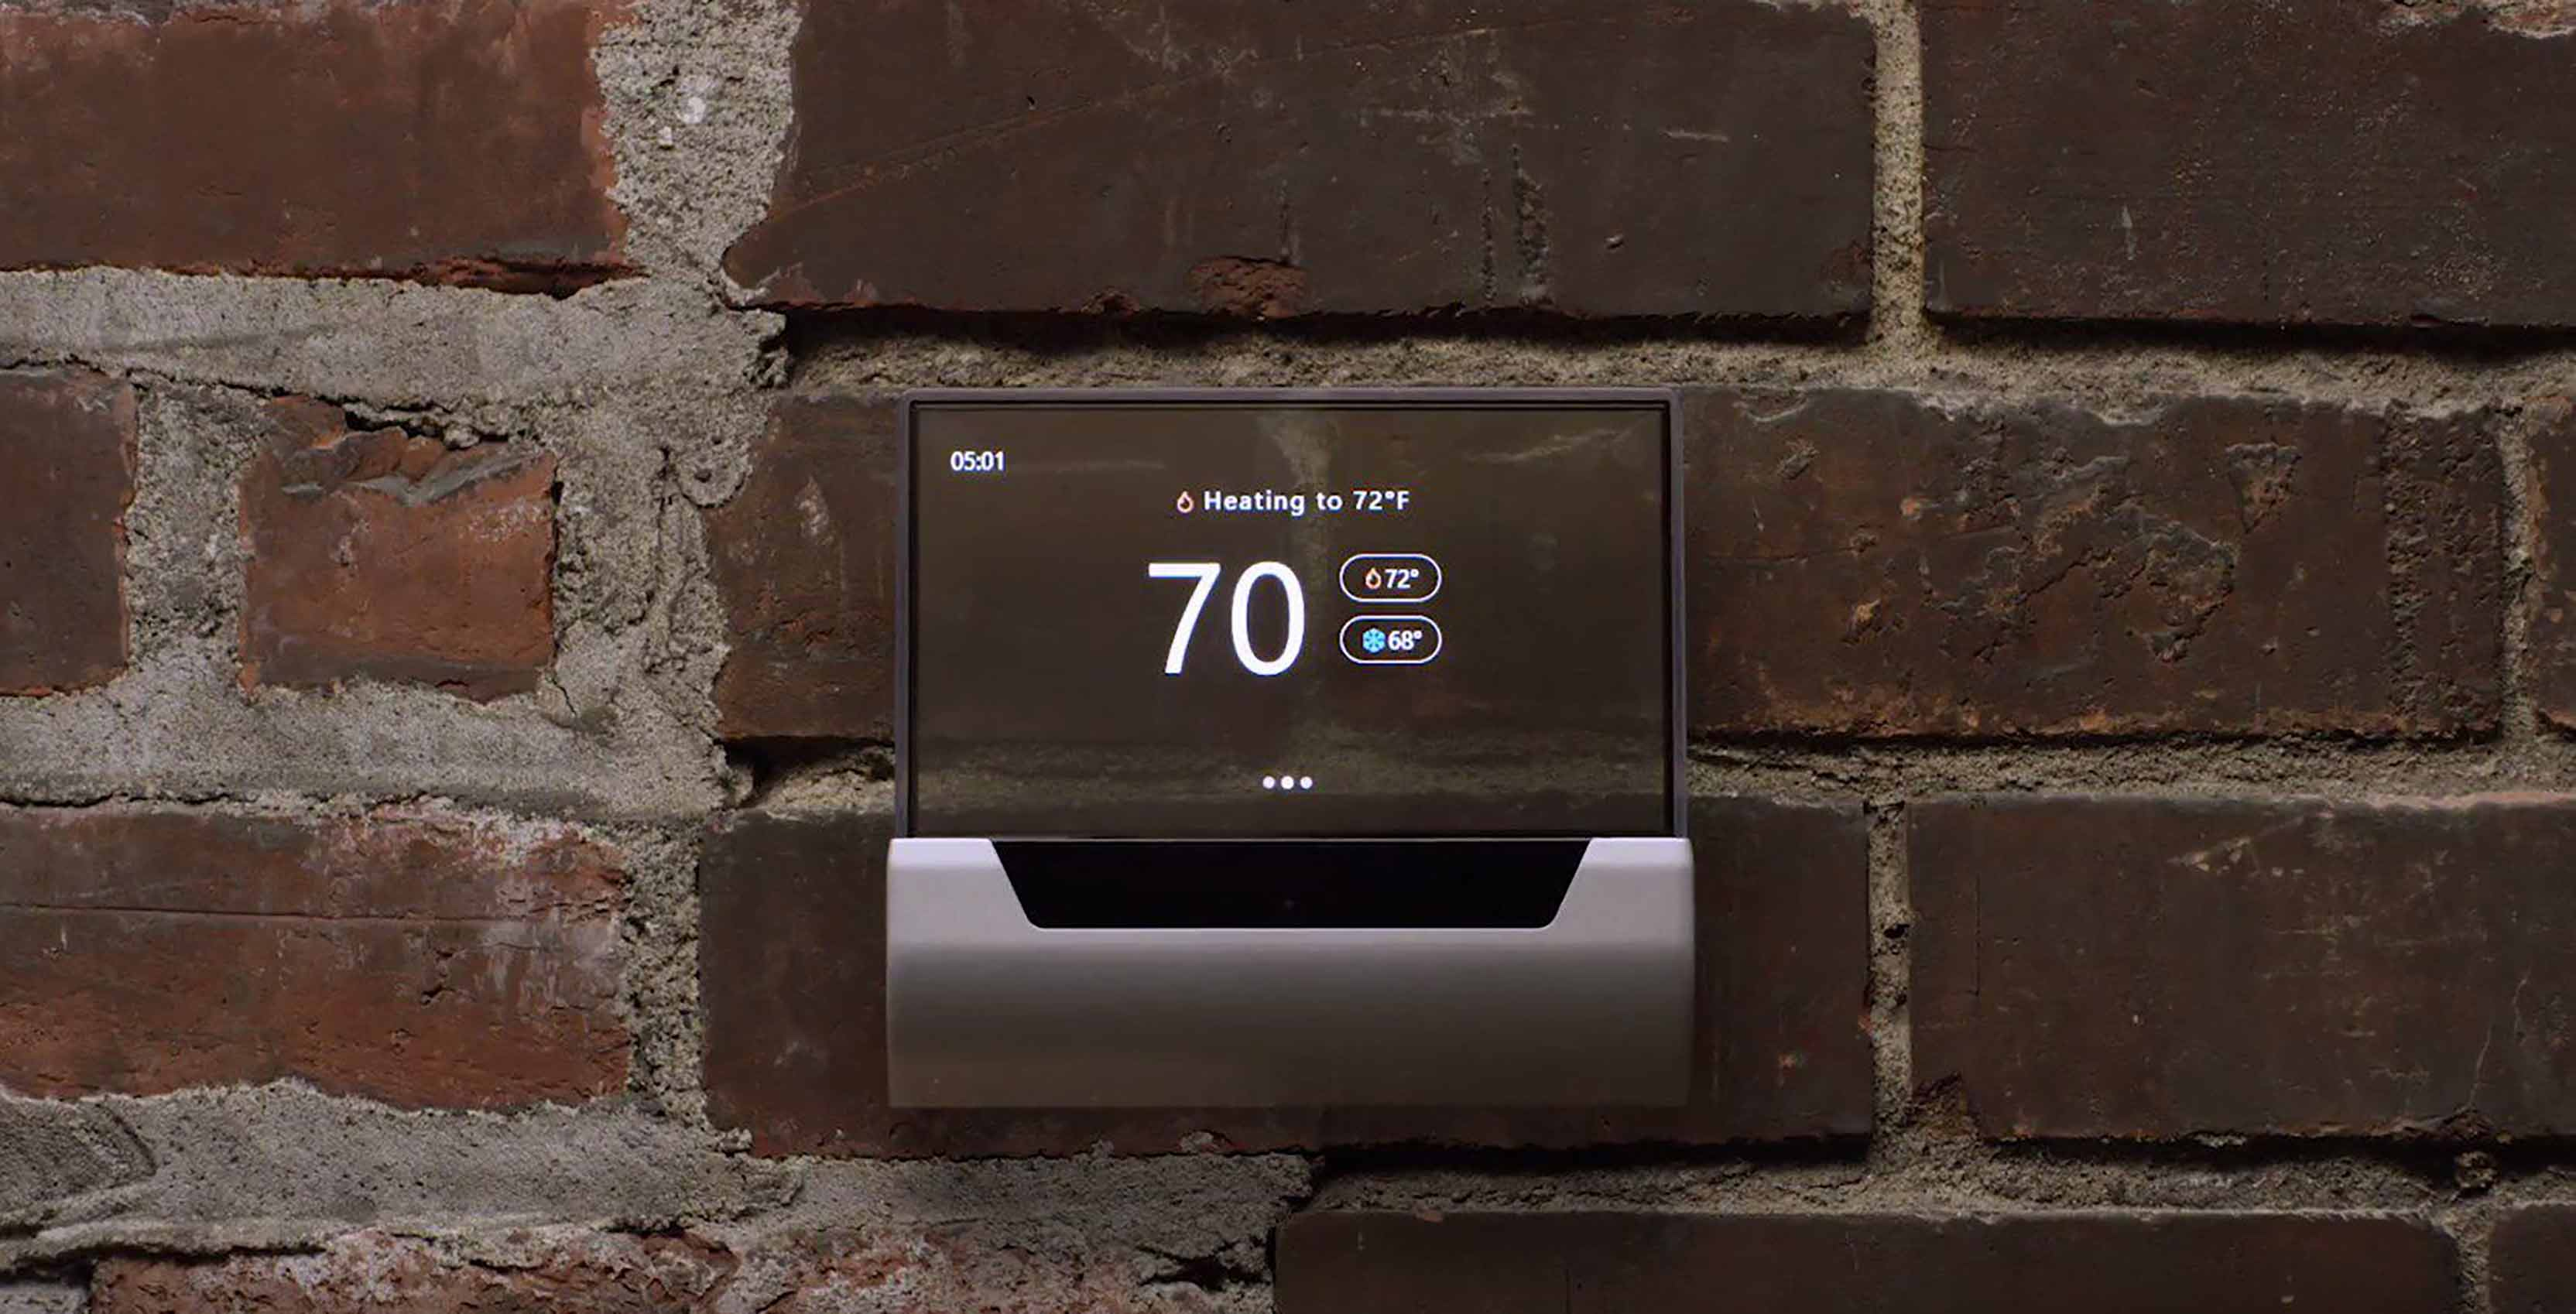 Microsoft GLAS thermostat